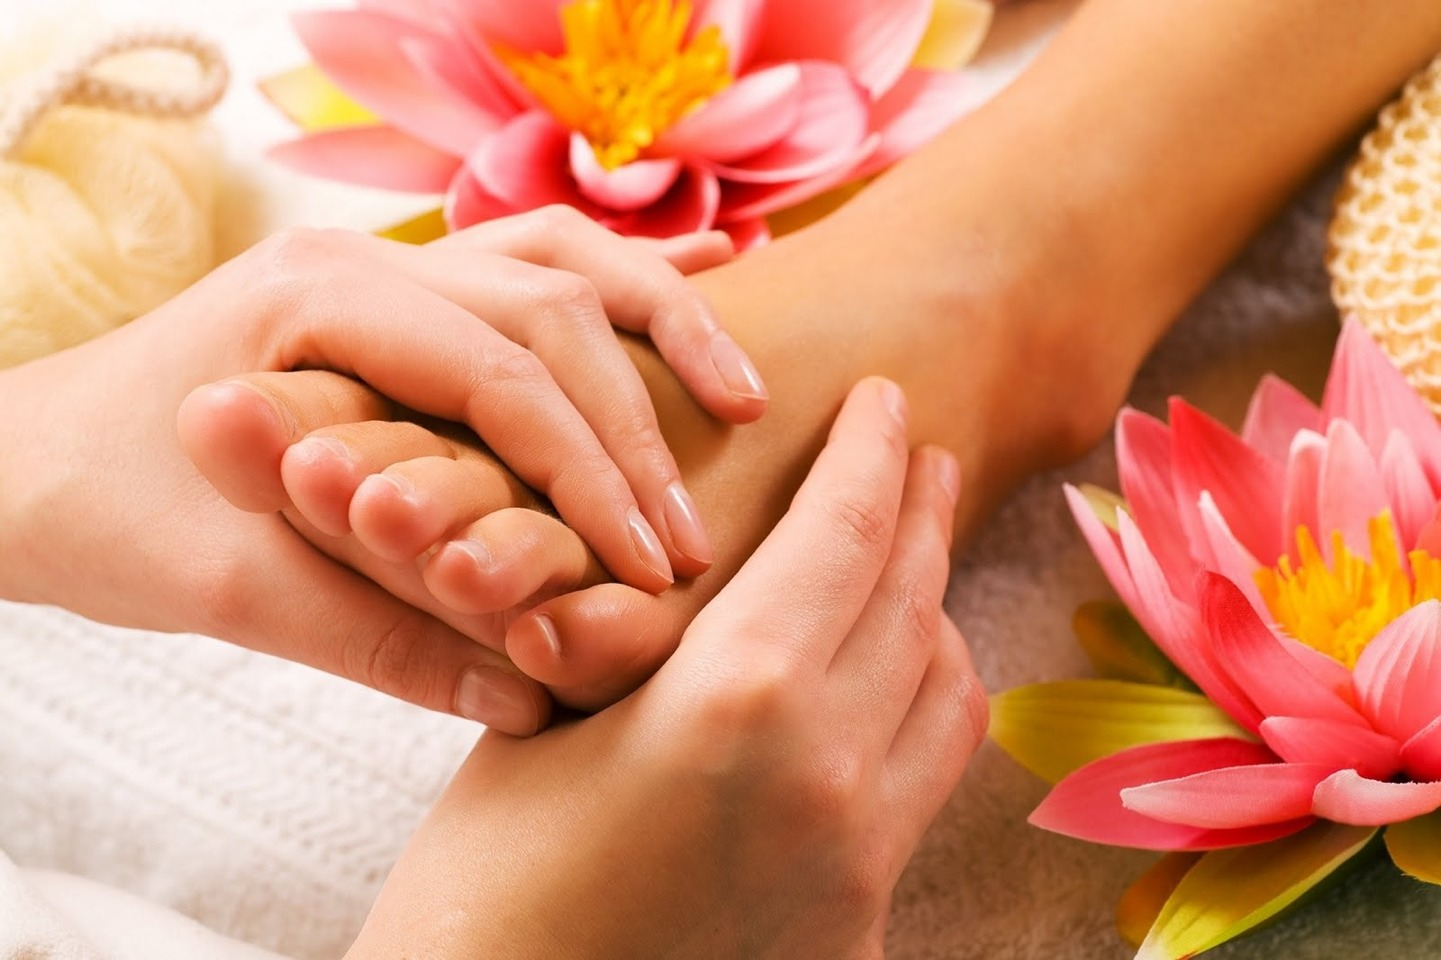 Dry your feet, then apply a mixture of olive oil and coconut oil to desired areas of the foot.